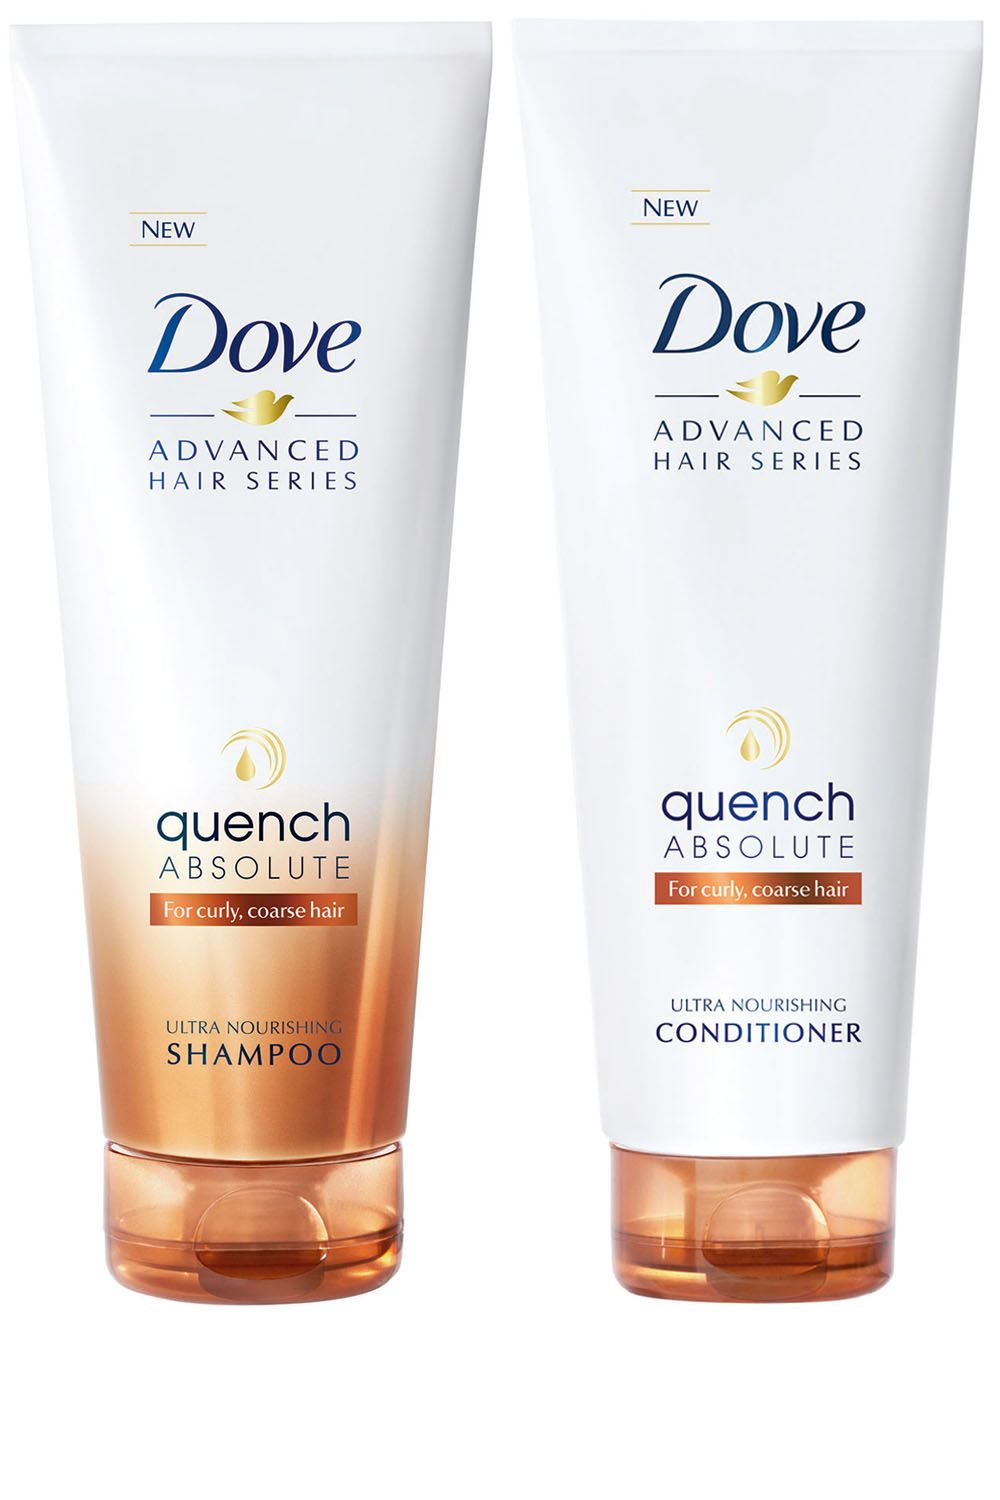 The Best Shampoos  Conditioners For Every Hair Type - Best hair products for curly hair